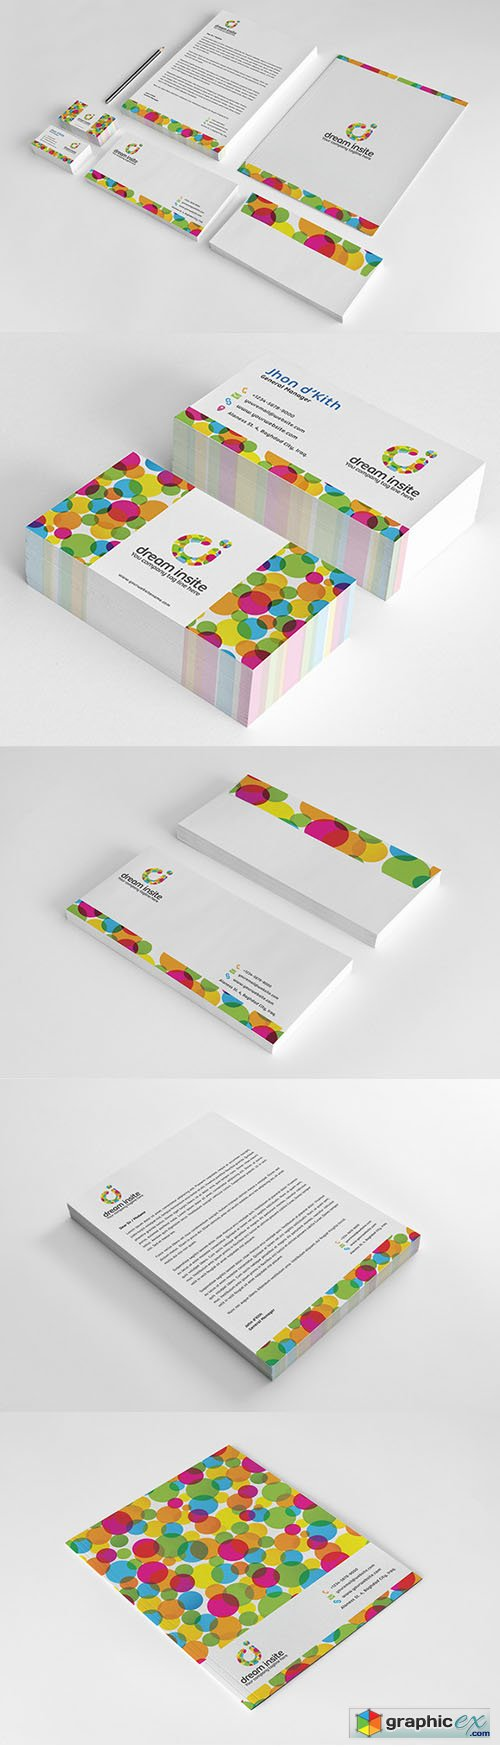 Professional Dream Insite Stationary